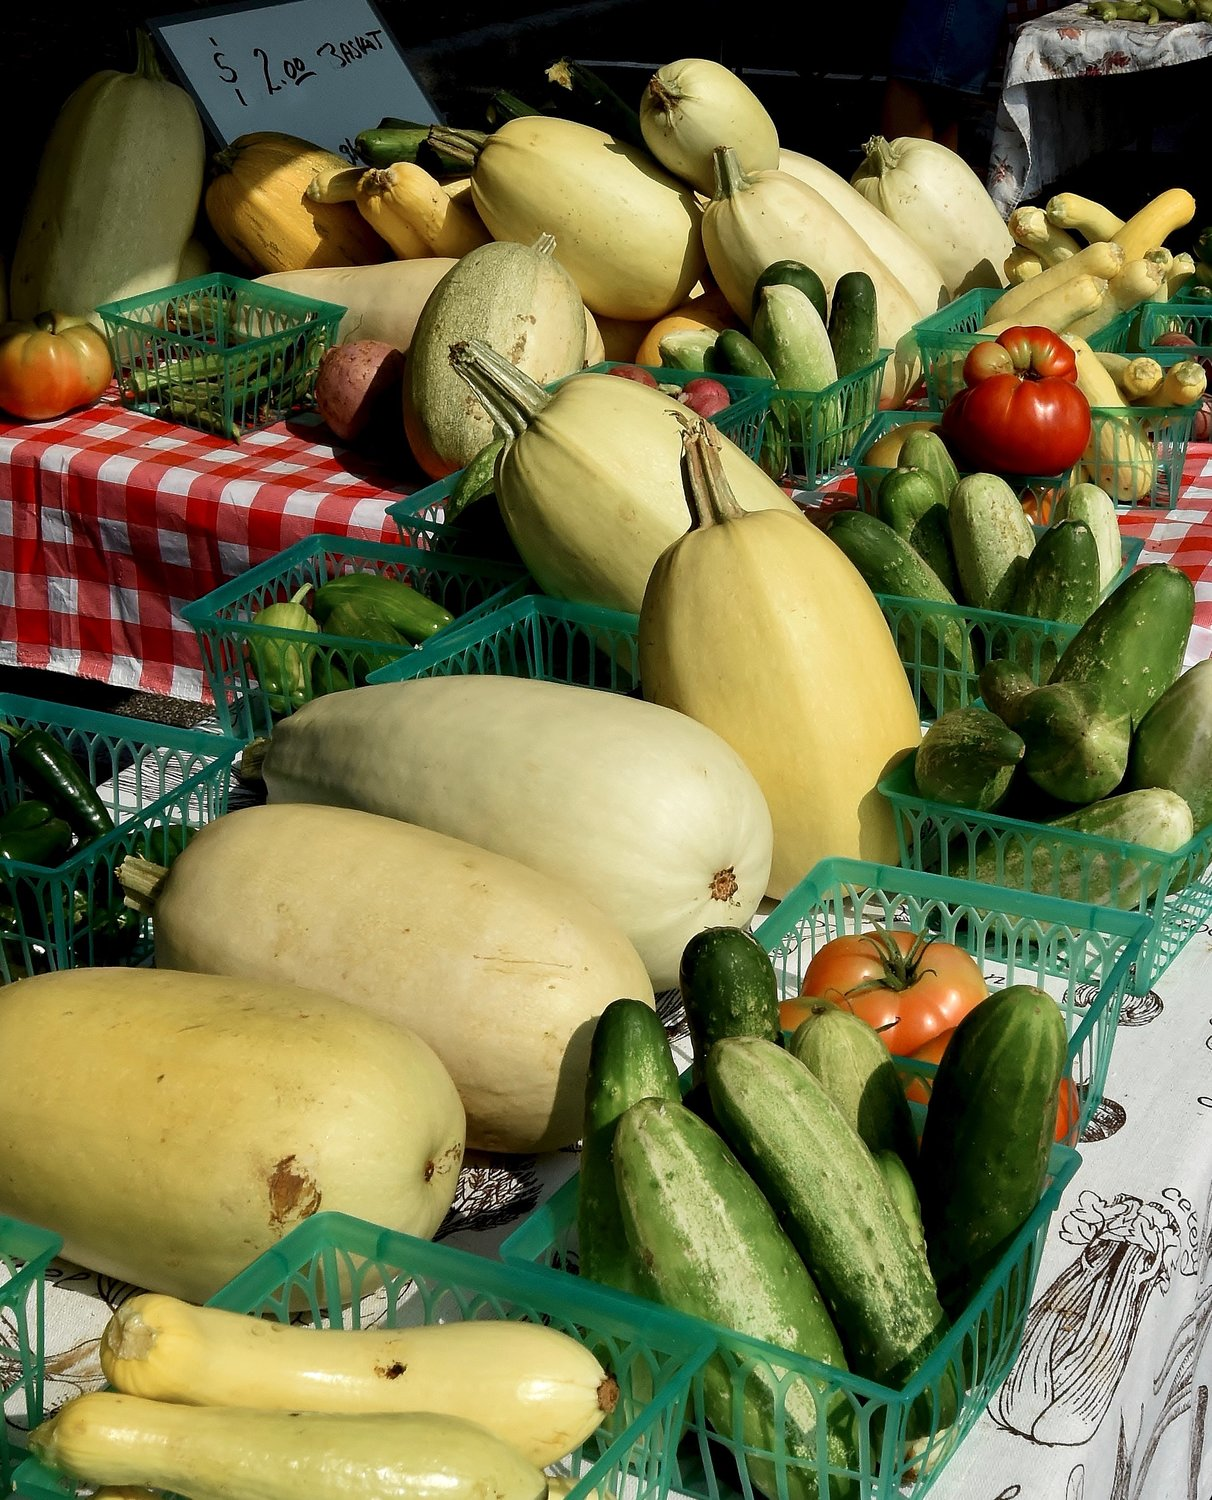 A variety of locally-grown vegetables and fruits are available weekly at the Cartersville Farmers Market. The downtown fixture is open from 8 a.m. until noon every Saturday morning through Sept. 26.